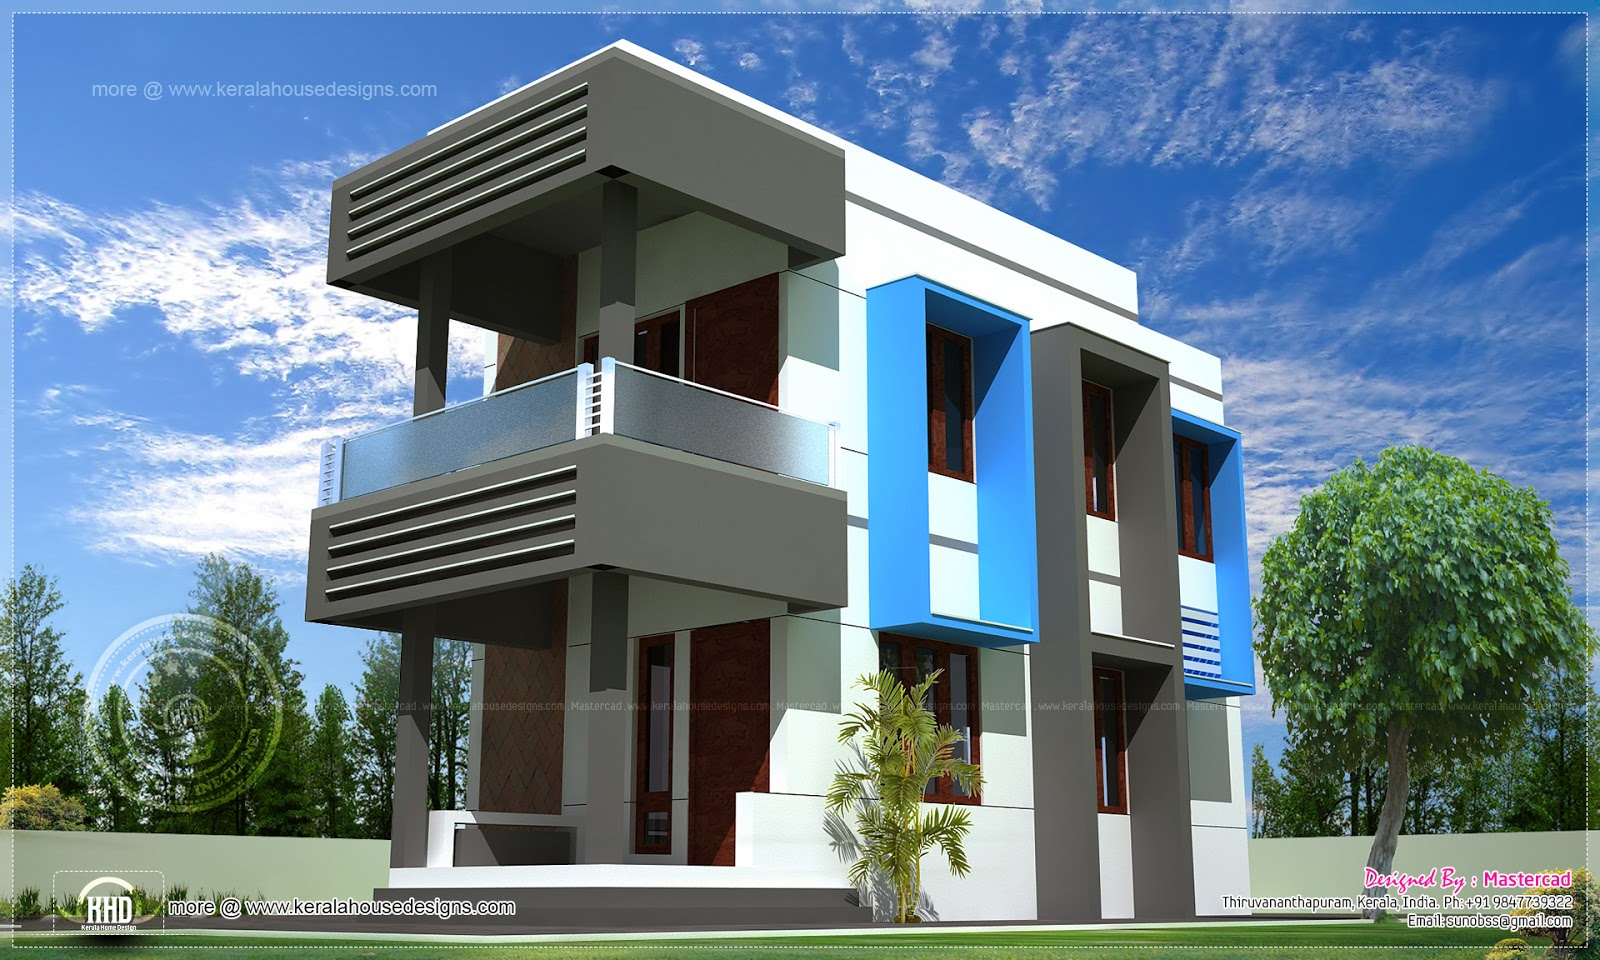 Contemporary compact villa design home kerala plans - Modern villa designs ...